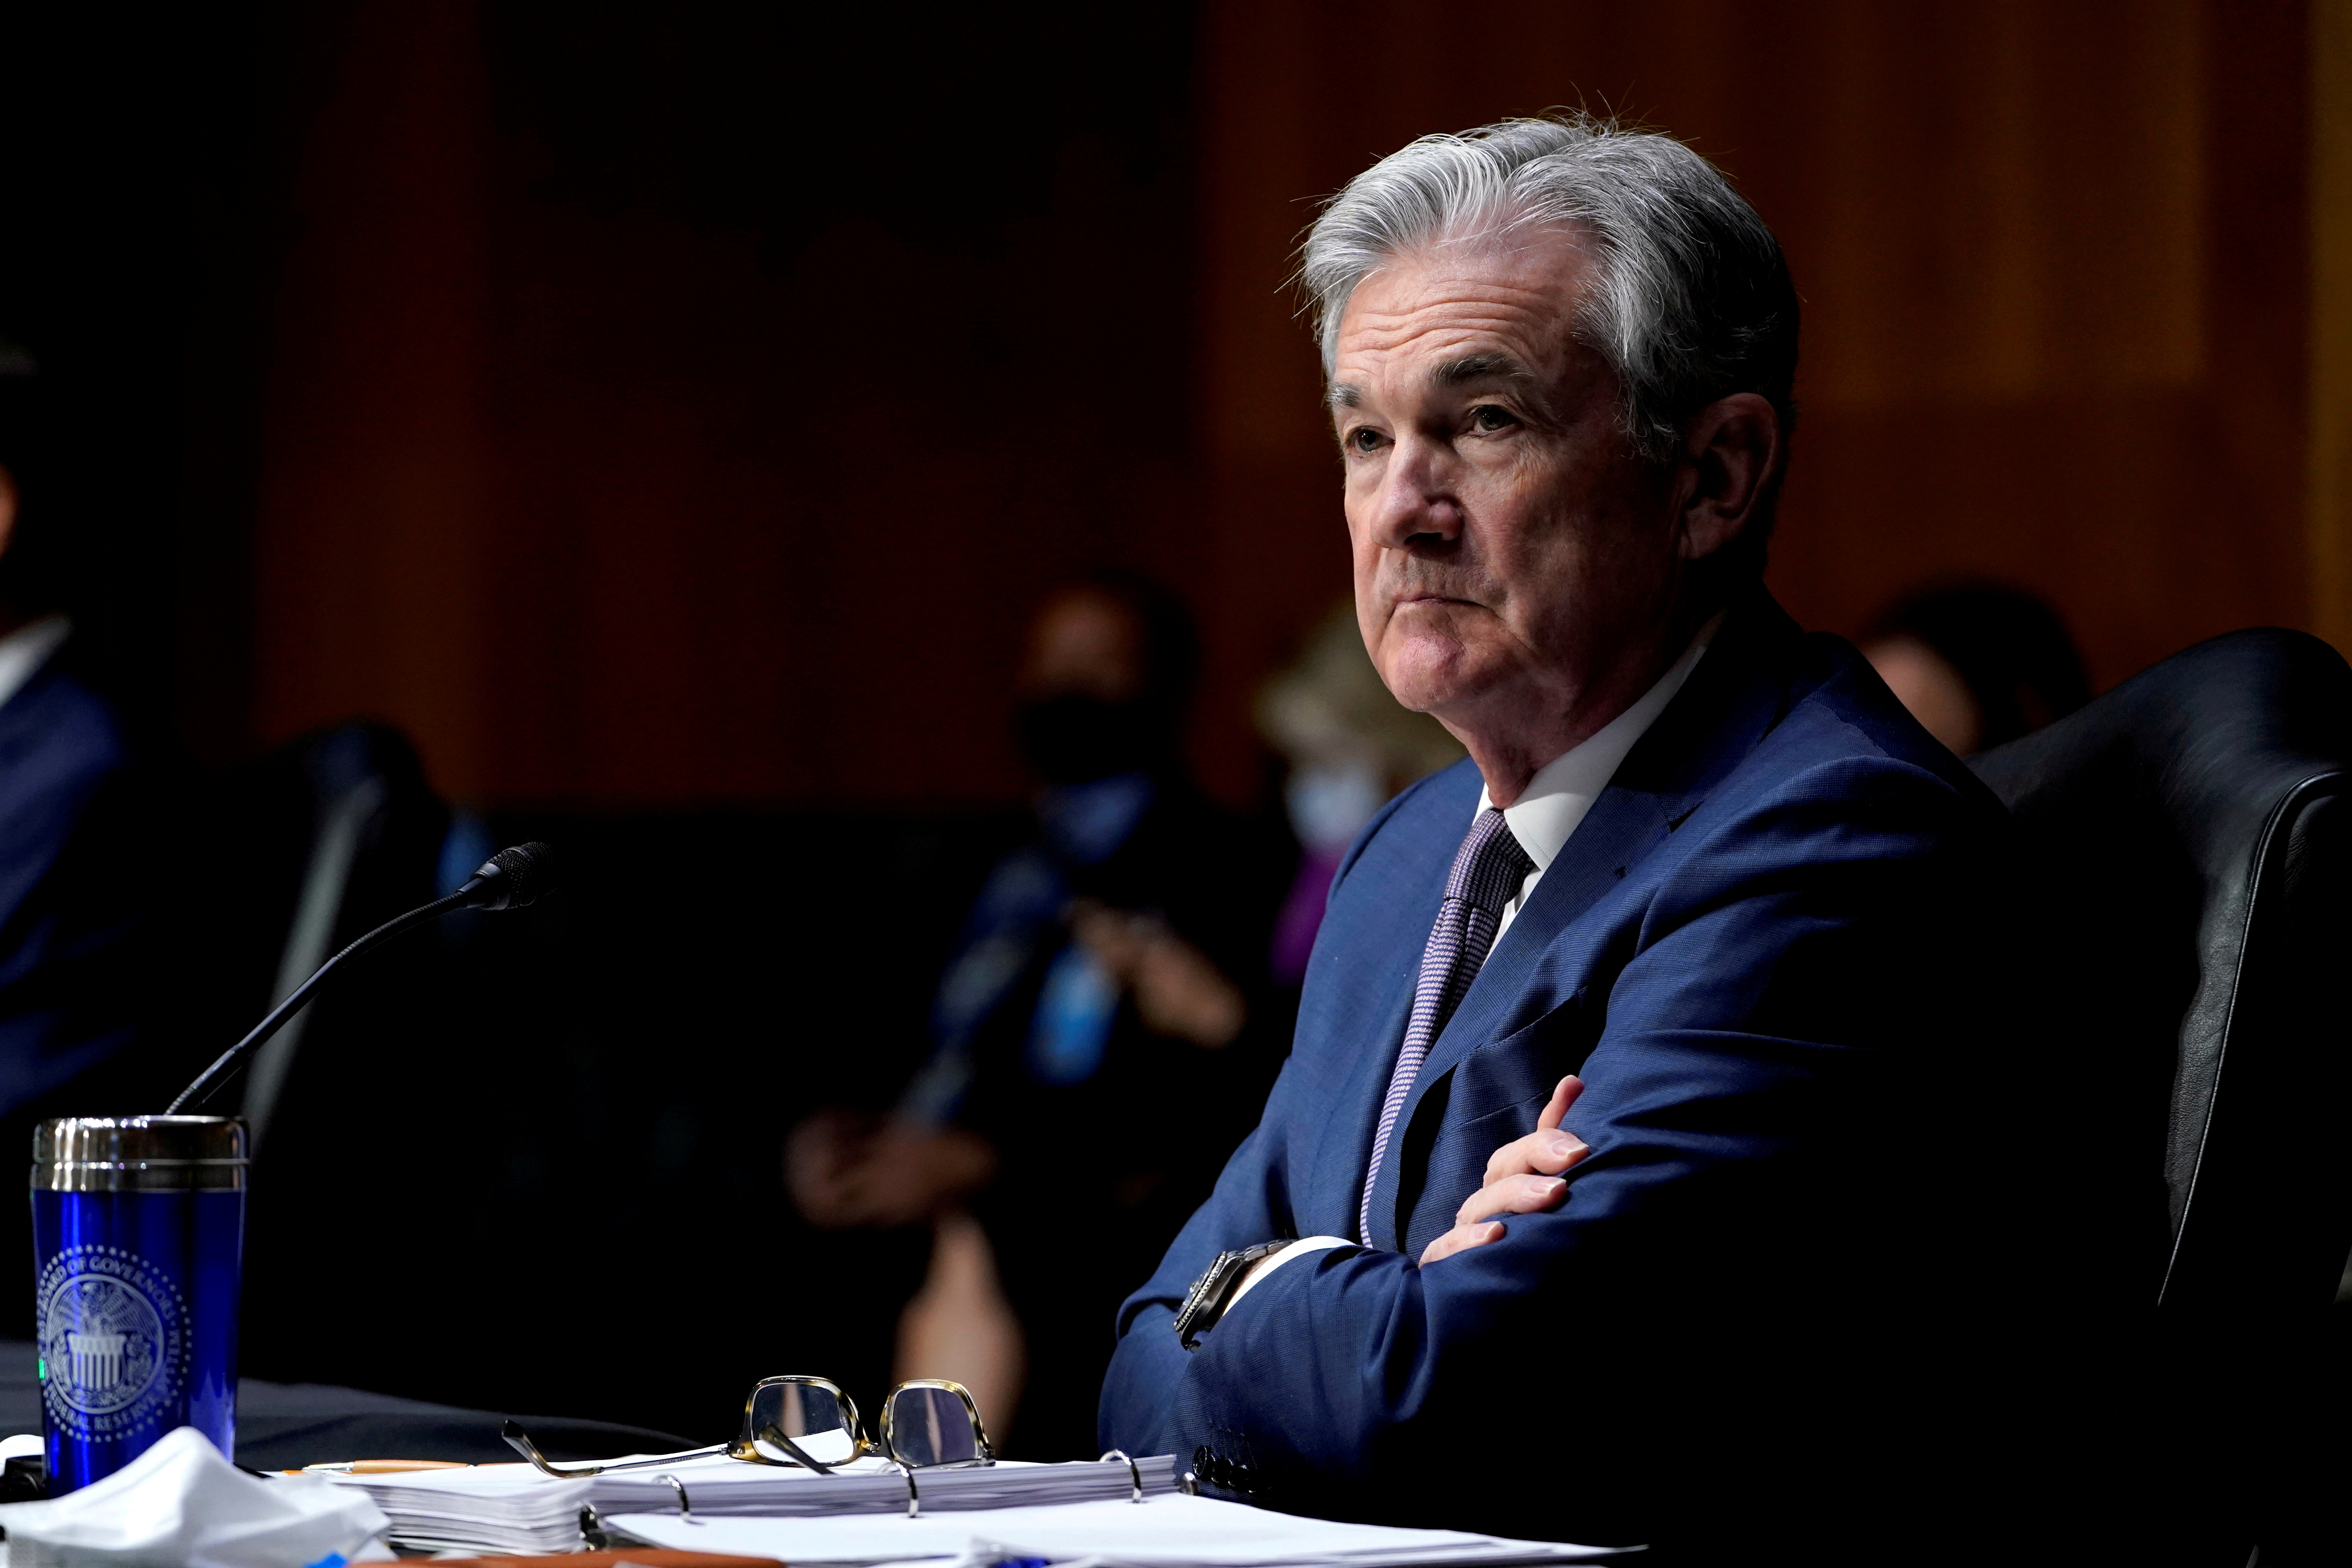 Chairman of the Federal Reserve Jerome Powell listens during a Senate Banking Committee hearing on